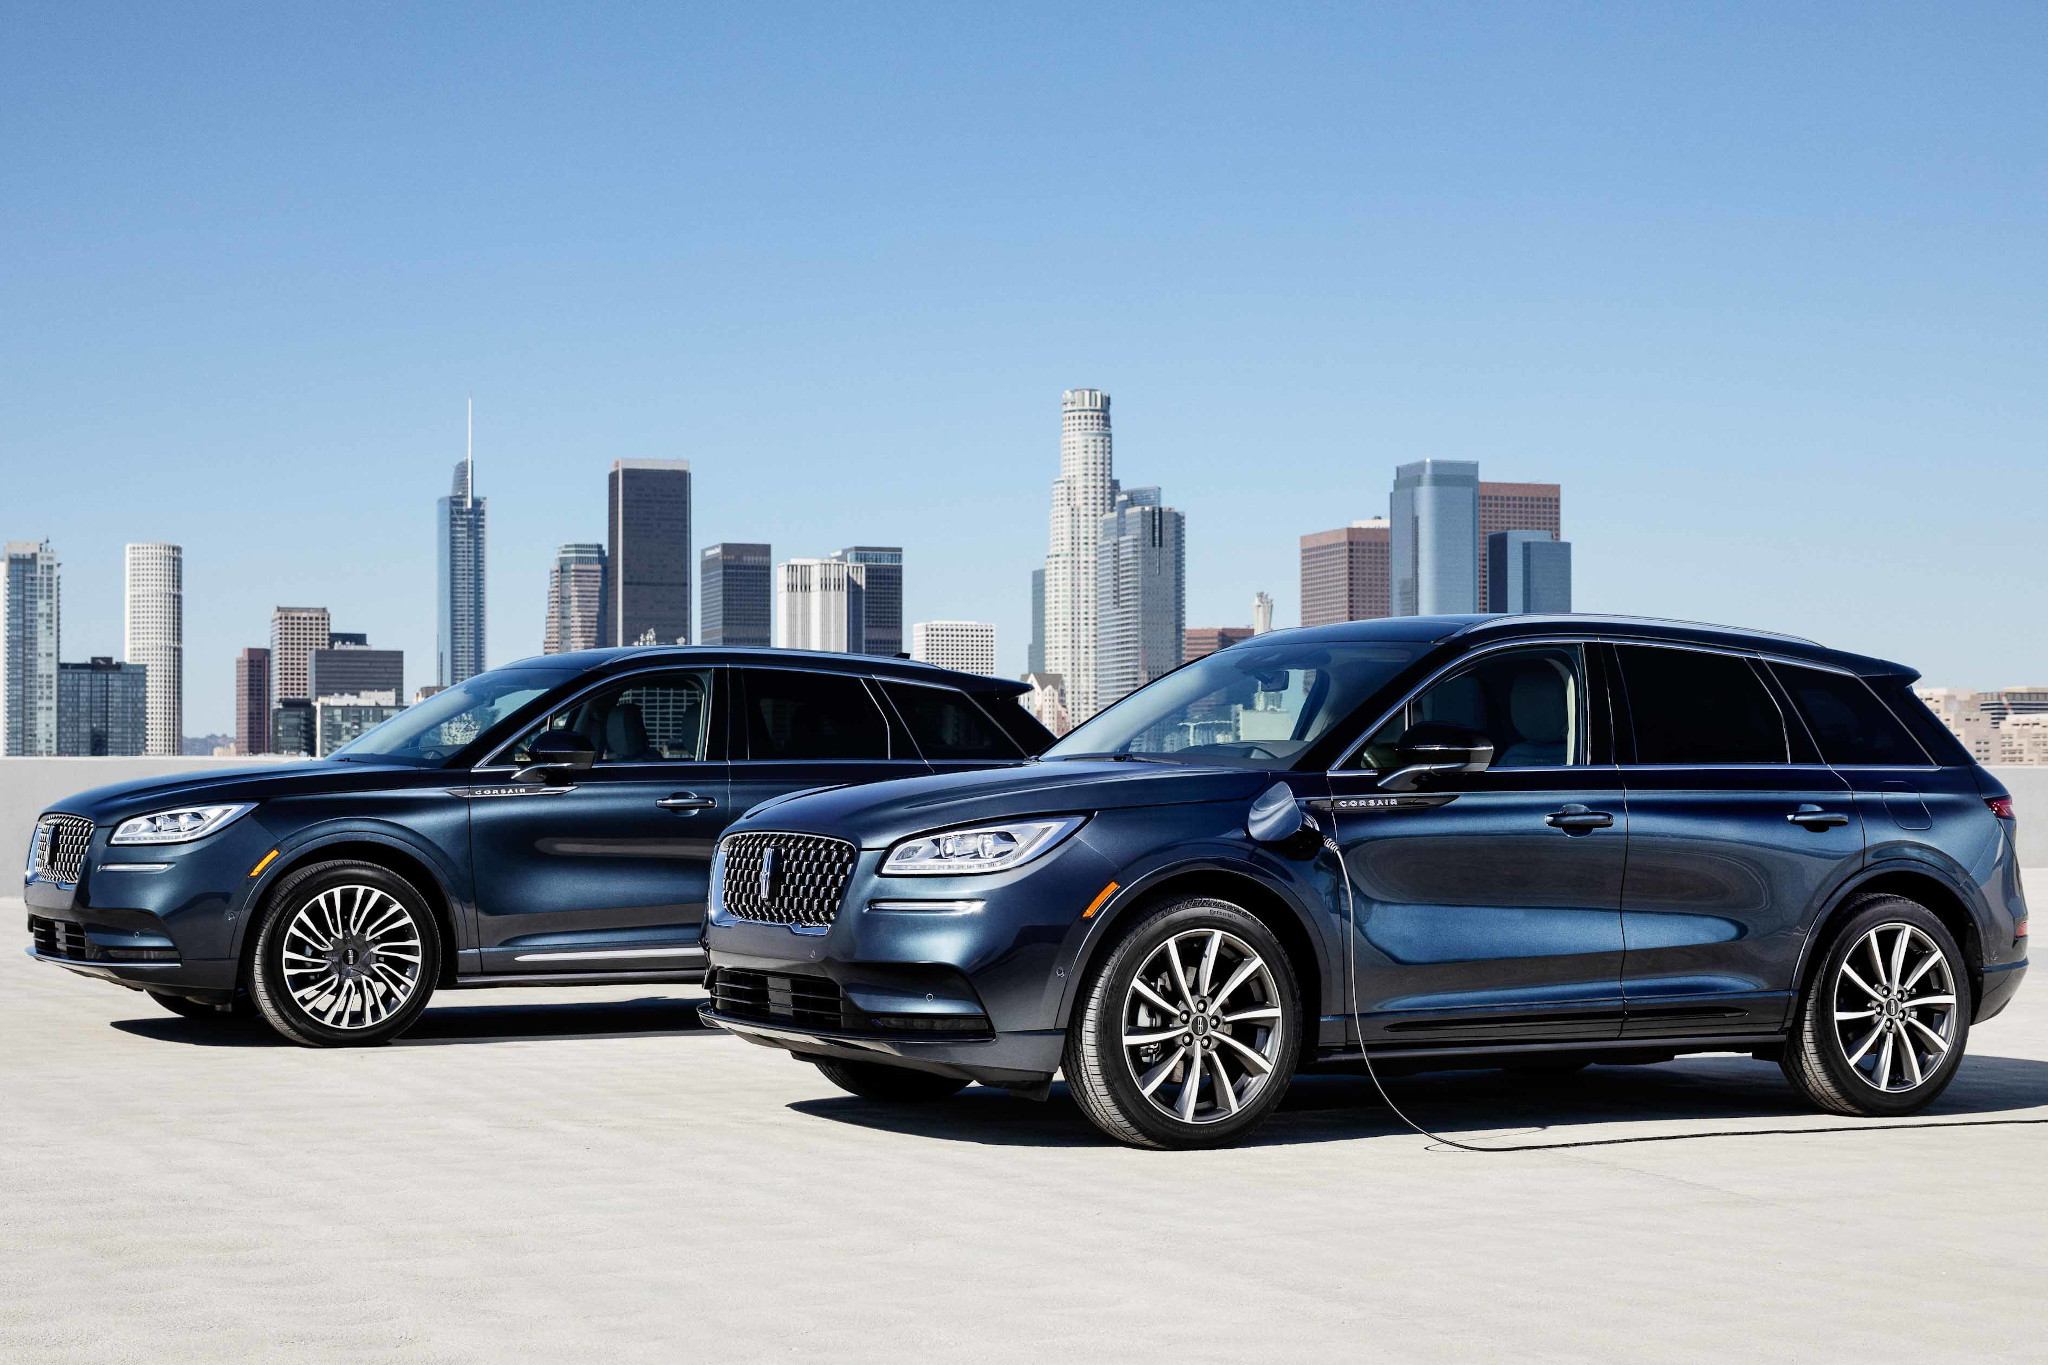 2021 Lincoln Corsair Grand Touring Adds Electric, Keeps the Luxury